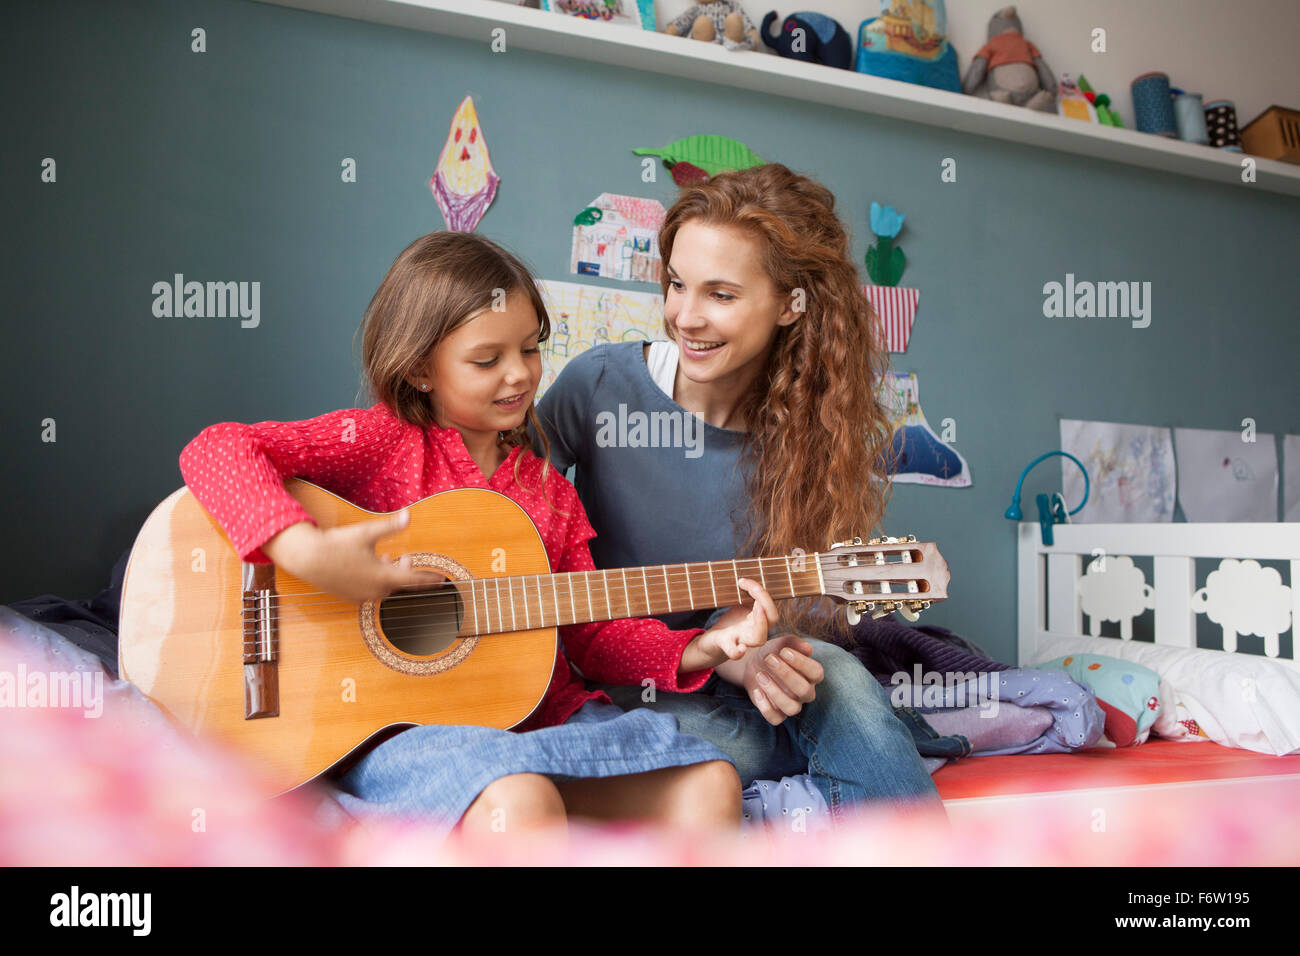 Little girl playing guitar while her mother listening - Stock Image